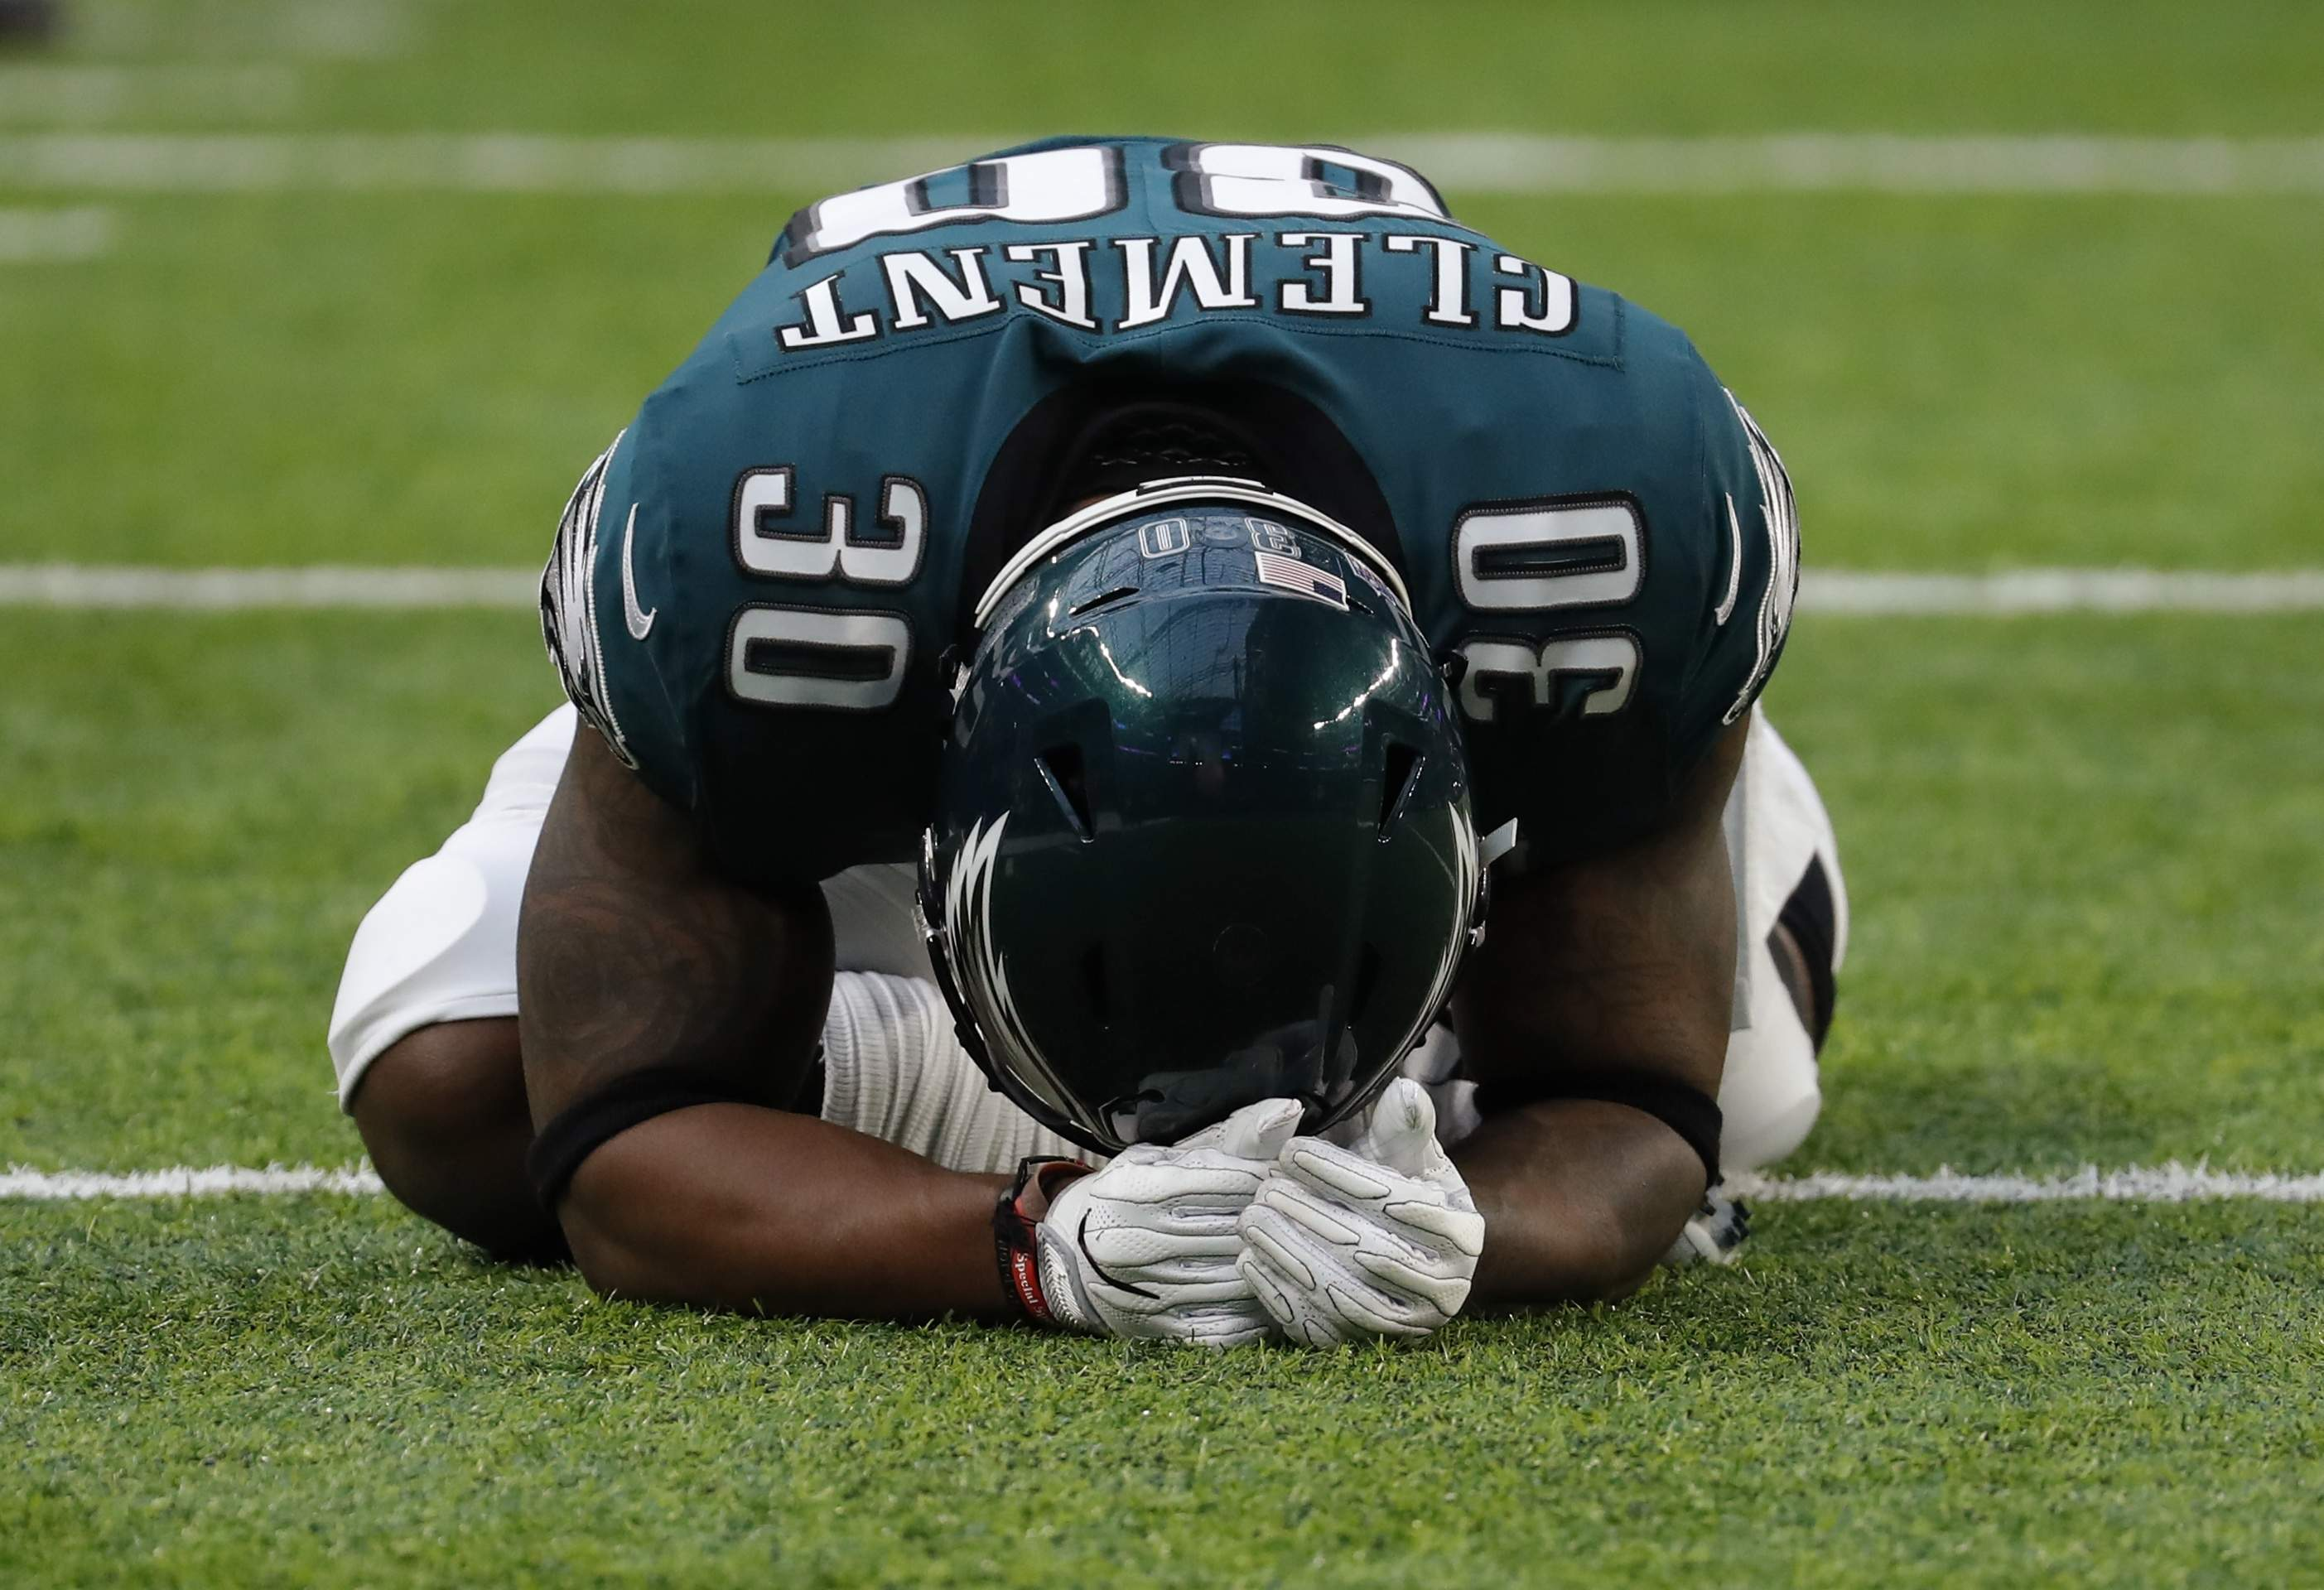 Philadelphia Eagles running back Corey Clement (30), stretches before the NFL Super Bowl 52 football game against the New England Patriots, Sunday, Feb. 4, 2018, in Minneapolis. (AP Photo/Charlie Neibergall)